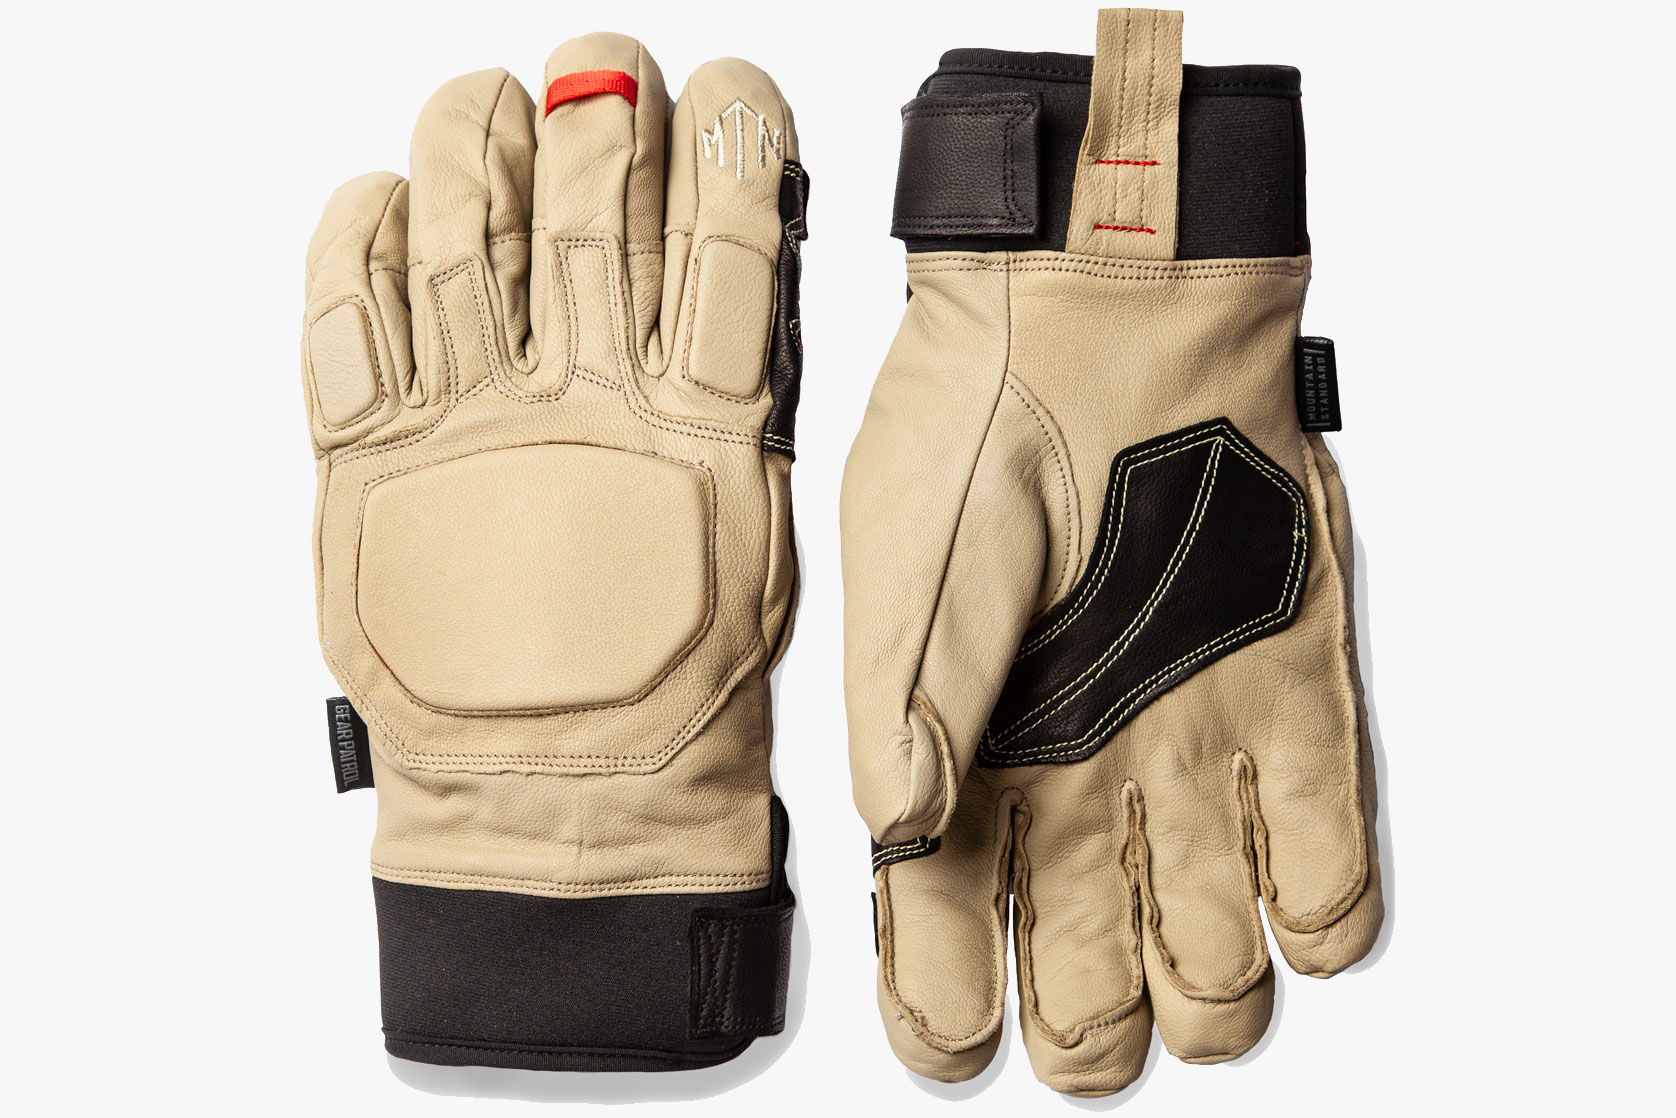 655b40edd44 Editor's Pick: My Favorite Winter Gloves Are 50% Off Right Now ...